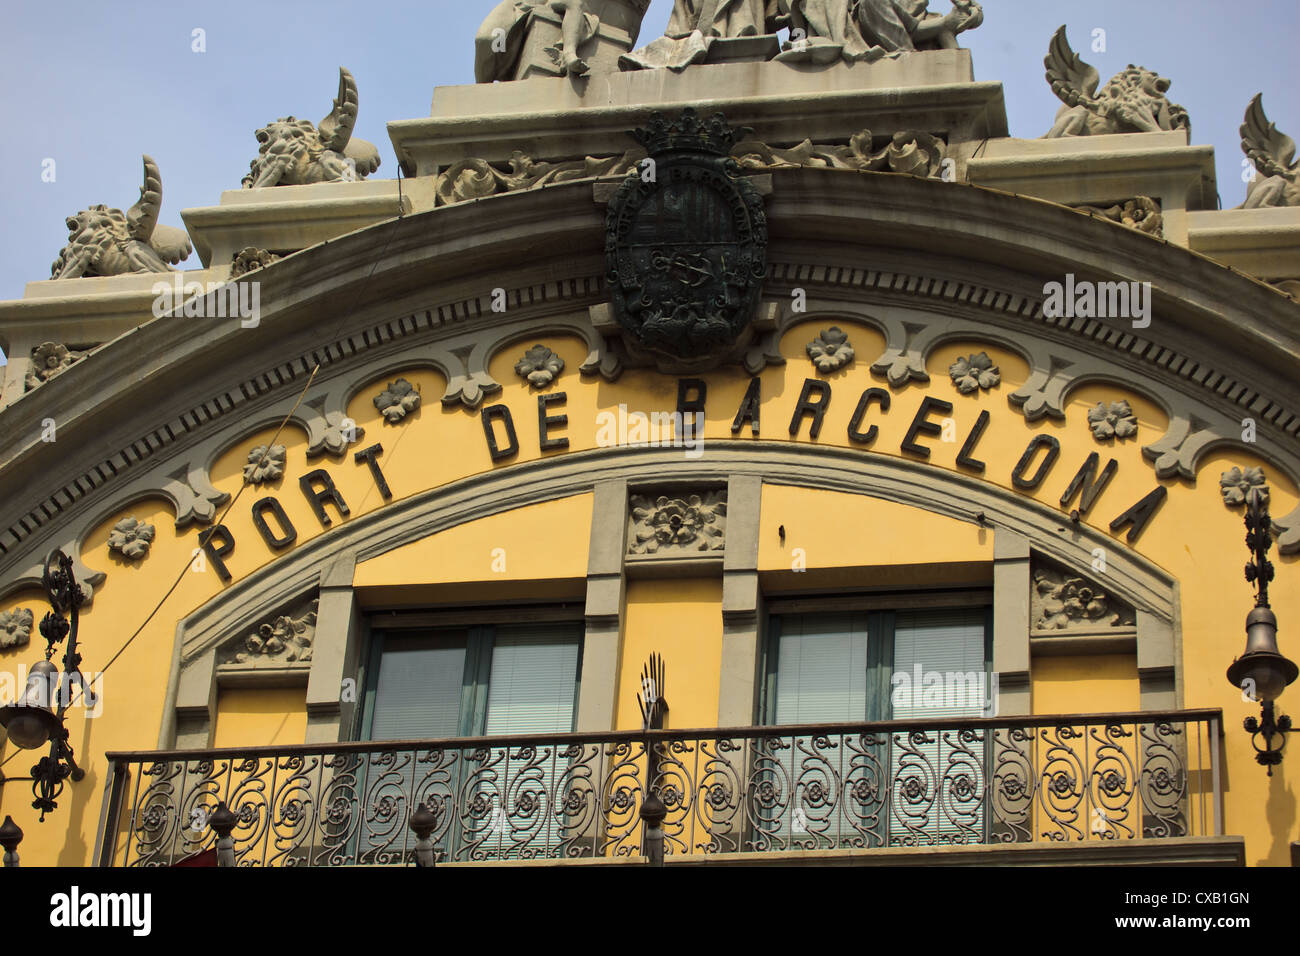 Port of Barcelona sign above balcony with decorative iron railing on old Port Authority building - Stock Image